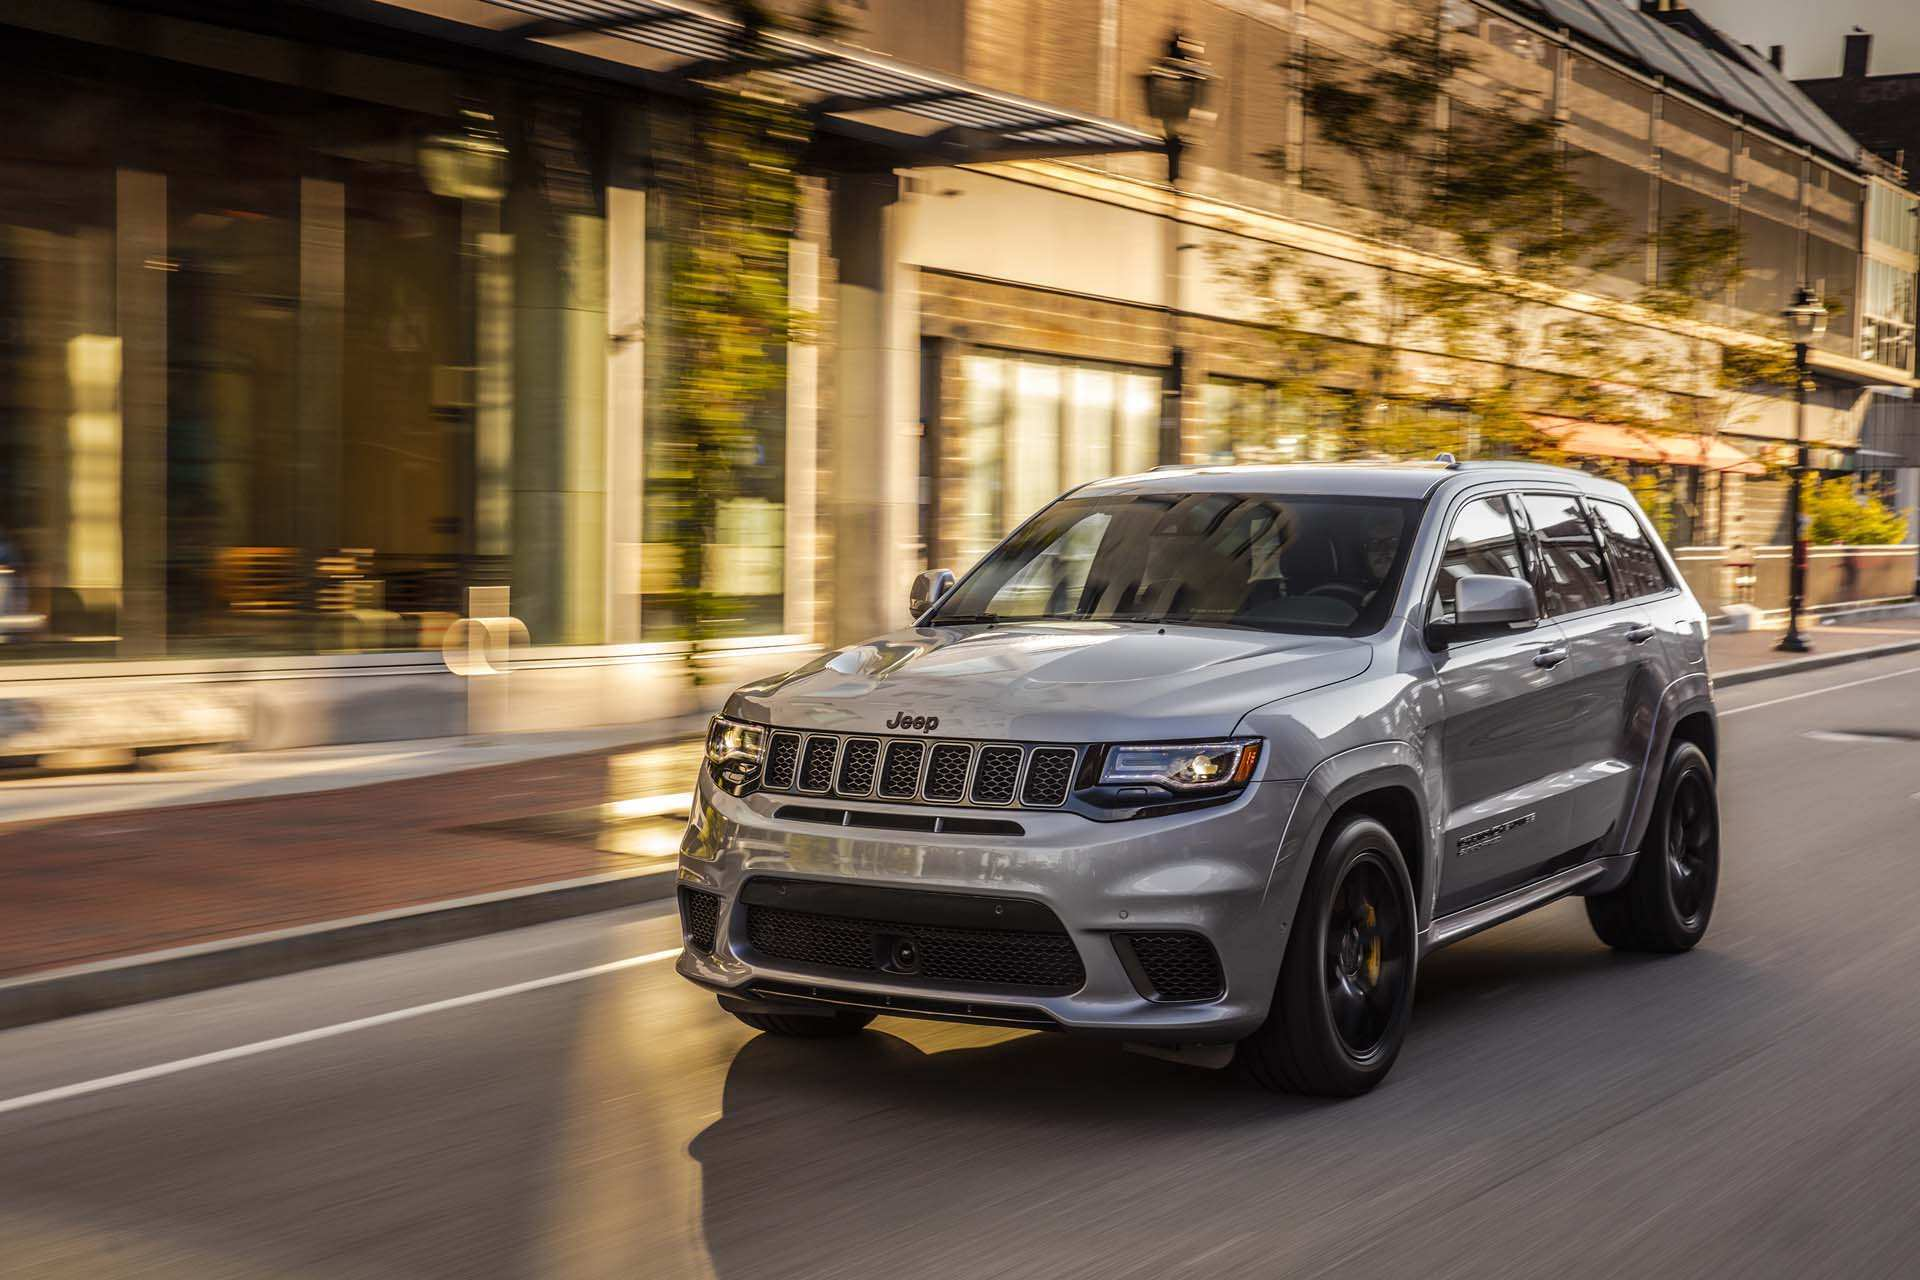 86 Concept of 2019 Jeep Lineup Performance and New Engine with 2019 Jeep Lineup